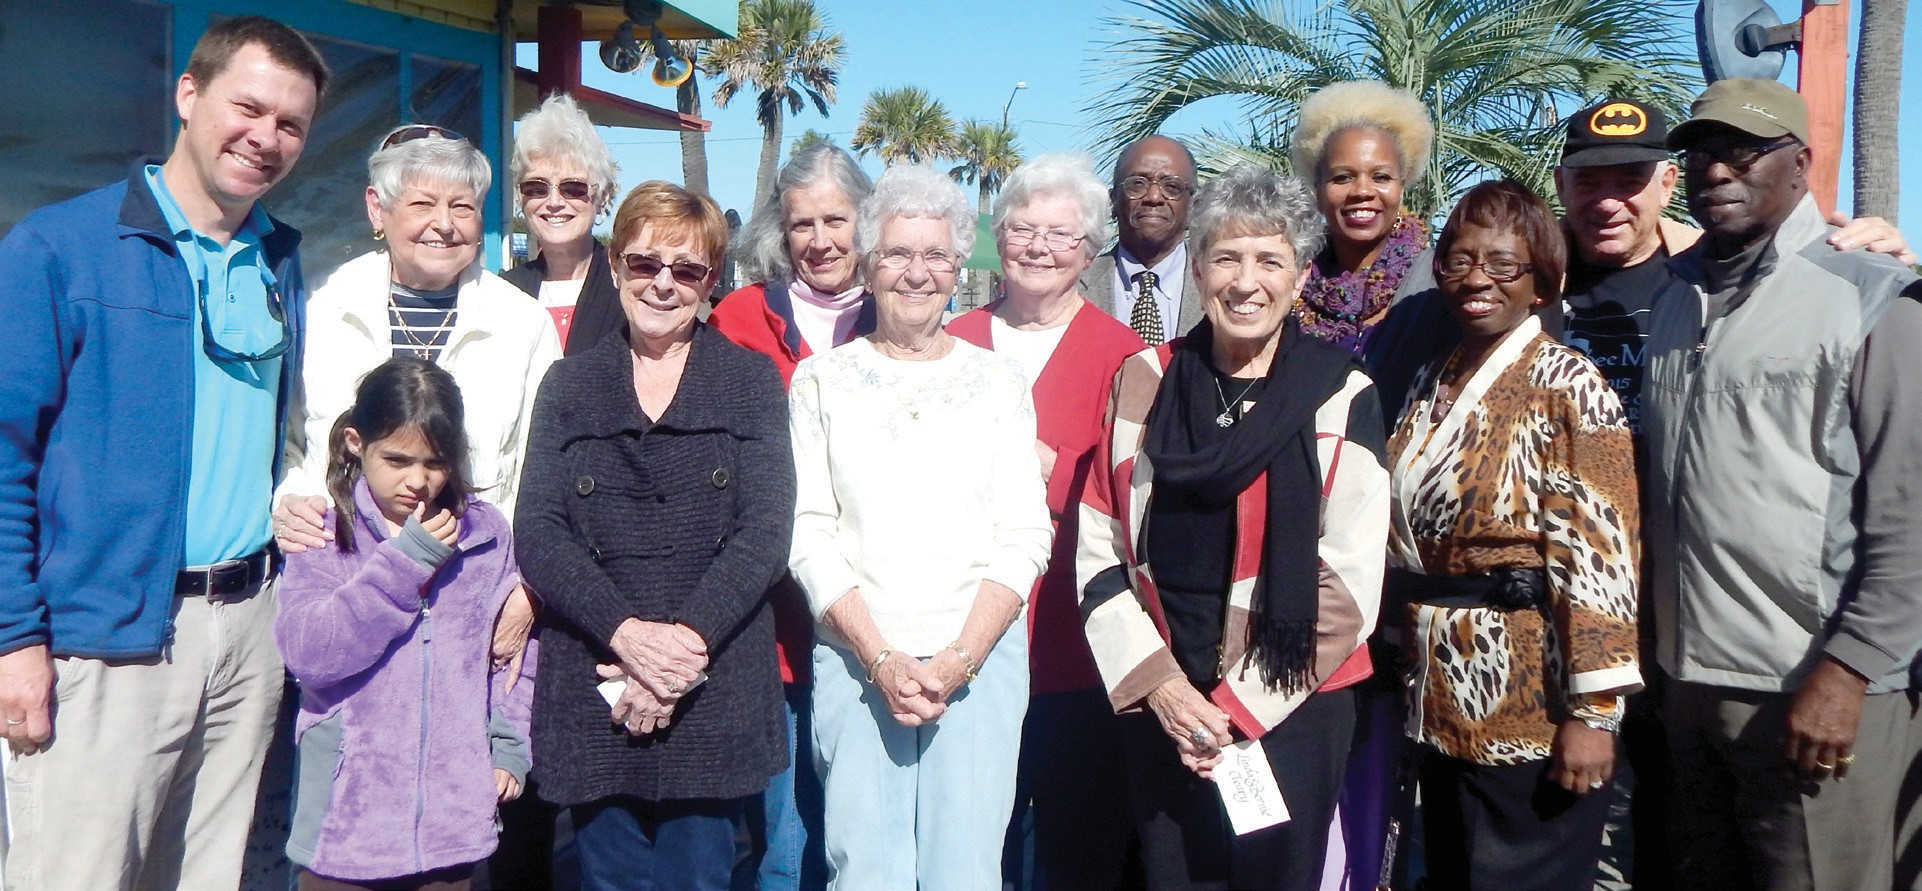 "(L-R) Jason Buelterman- Tybee Mayor; Daughter Buelterman; Phyllis Saunders; Brenda Manucy; Cathy Anderson; Catherine Smith; Genevieve O'Conner- Spokesperson; Mary Kay O'Leary; Mr. Blackshear; Linda Cleary; Julia Pearce- TybeeMLK Coordinator; Carolyn Blackshear- Savannah MLK; Gordon ""Batman"" Varnedoe; and Ernie"